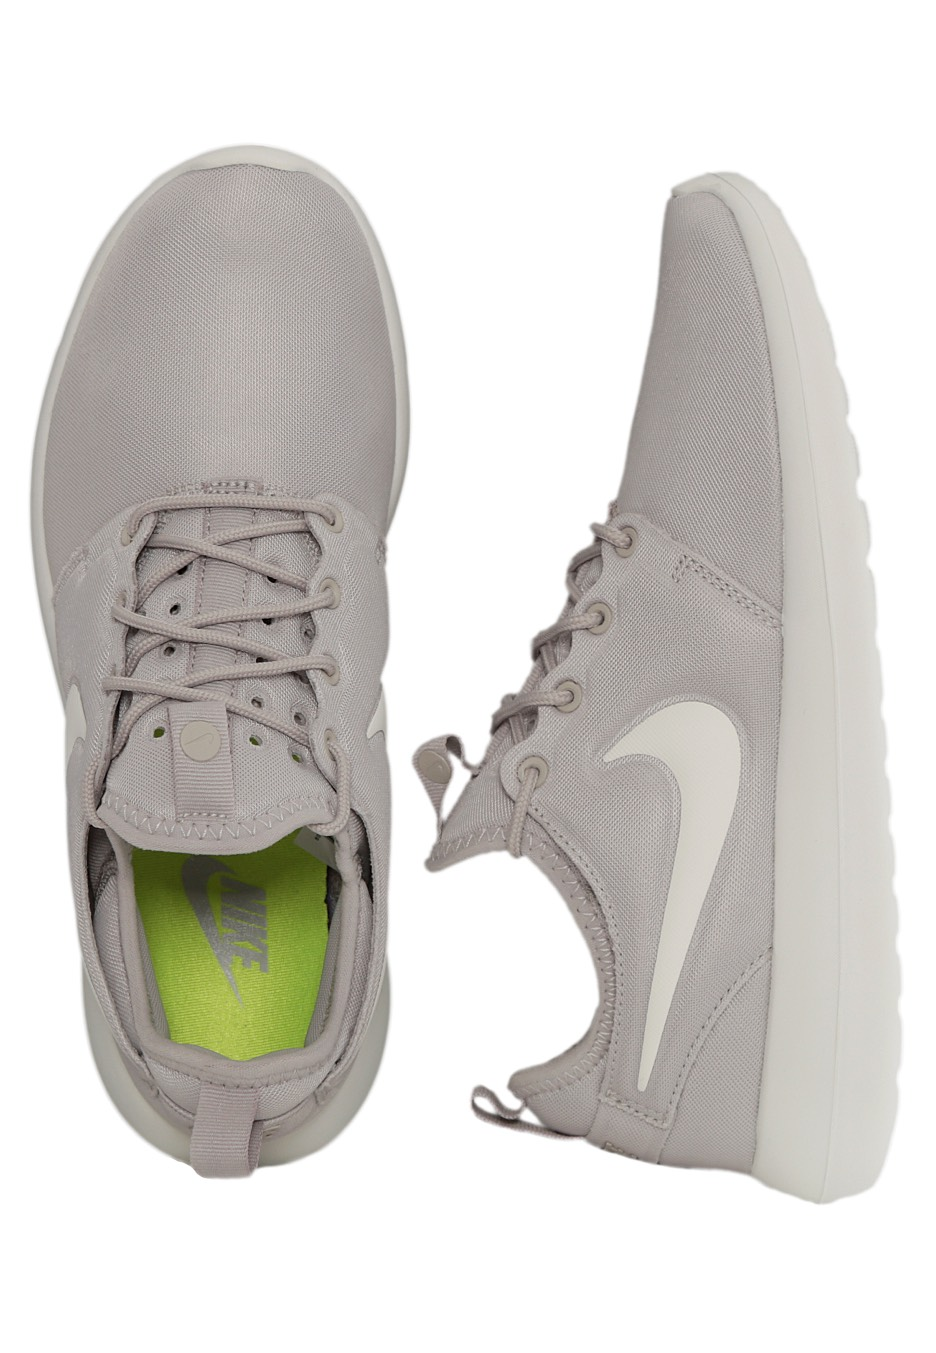 new product dc2a7 21477 Nike - Roshe Two Light Iron Ore Summit White Volt - Girl Shoes - Impericon.com  Worldwide